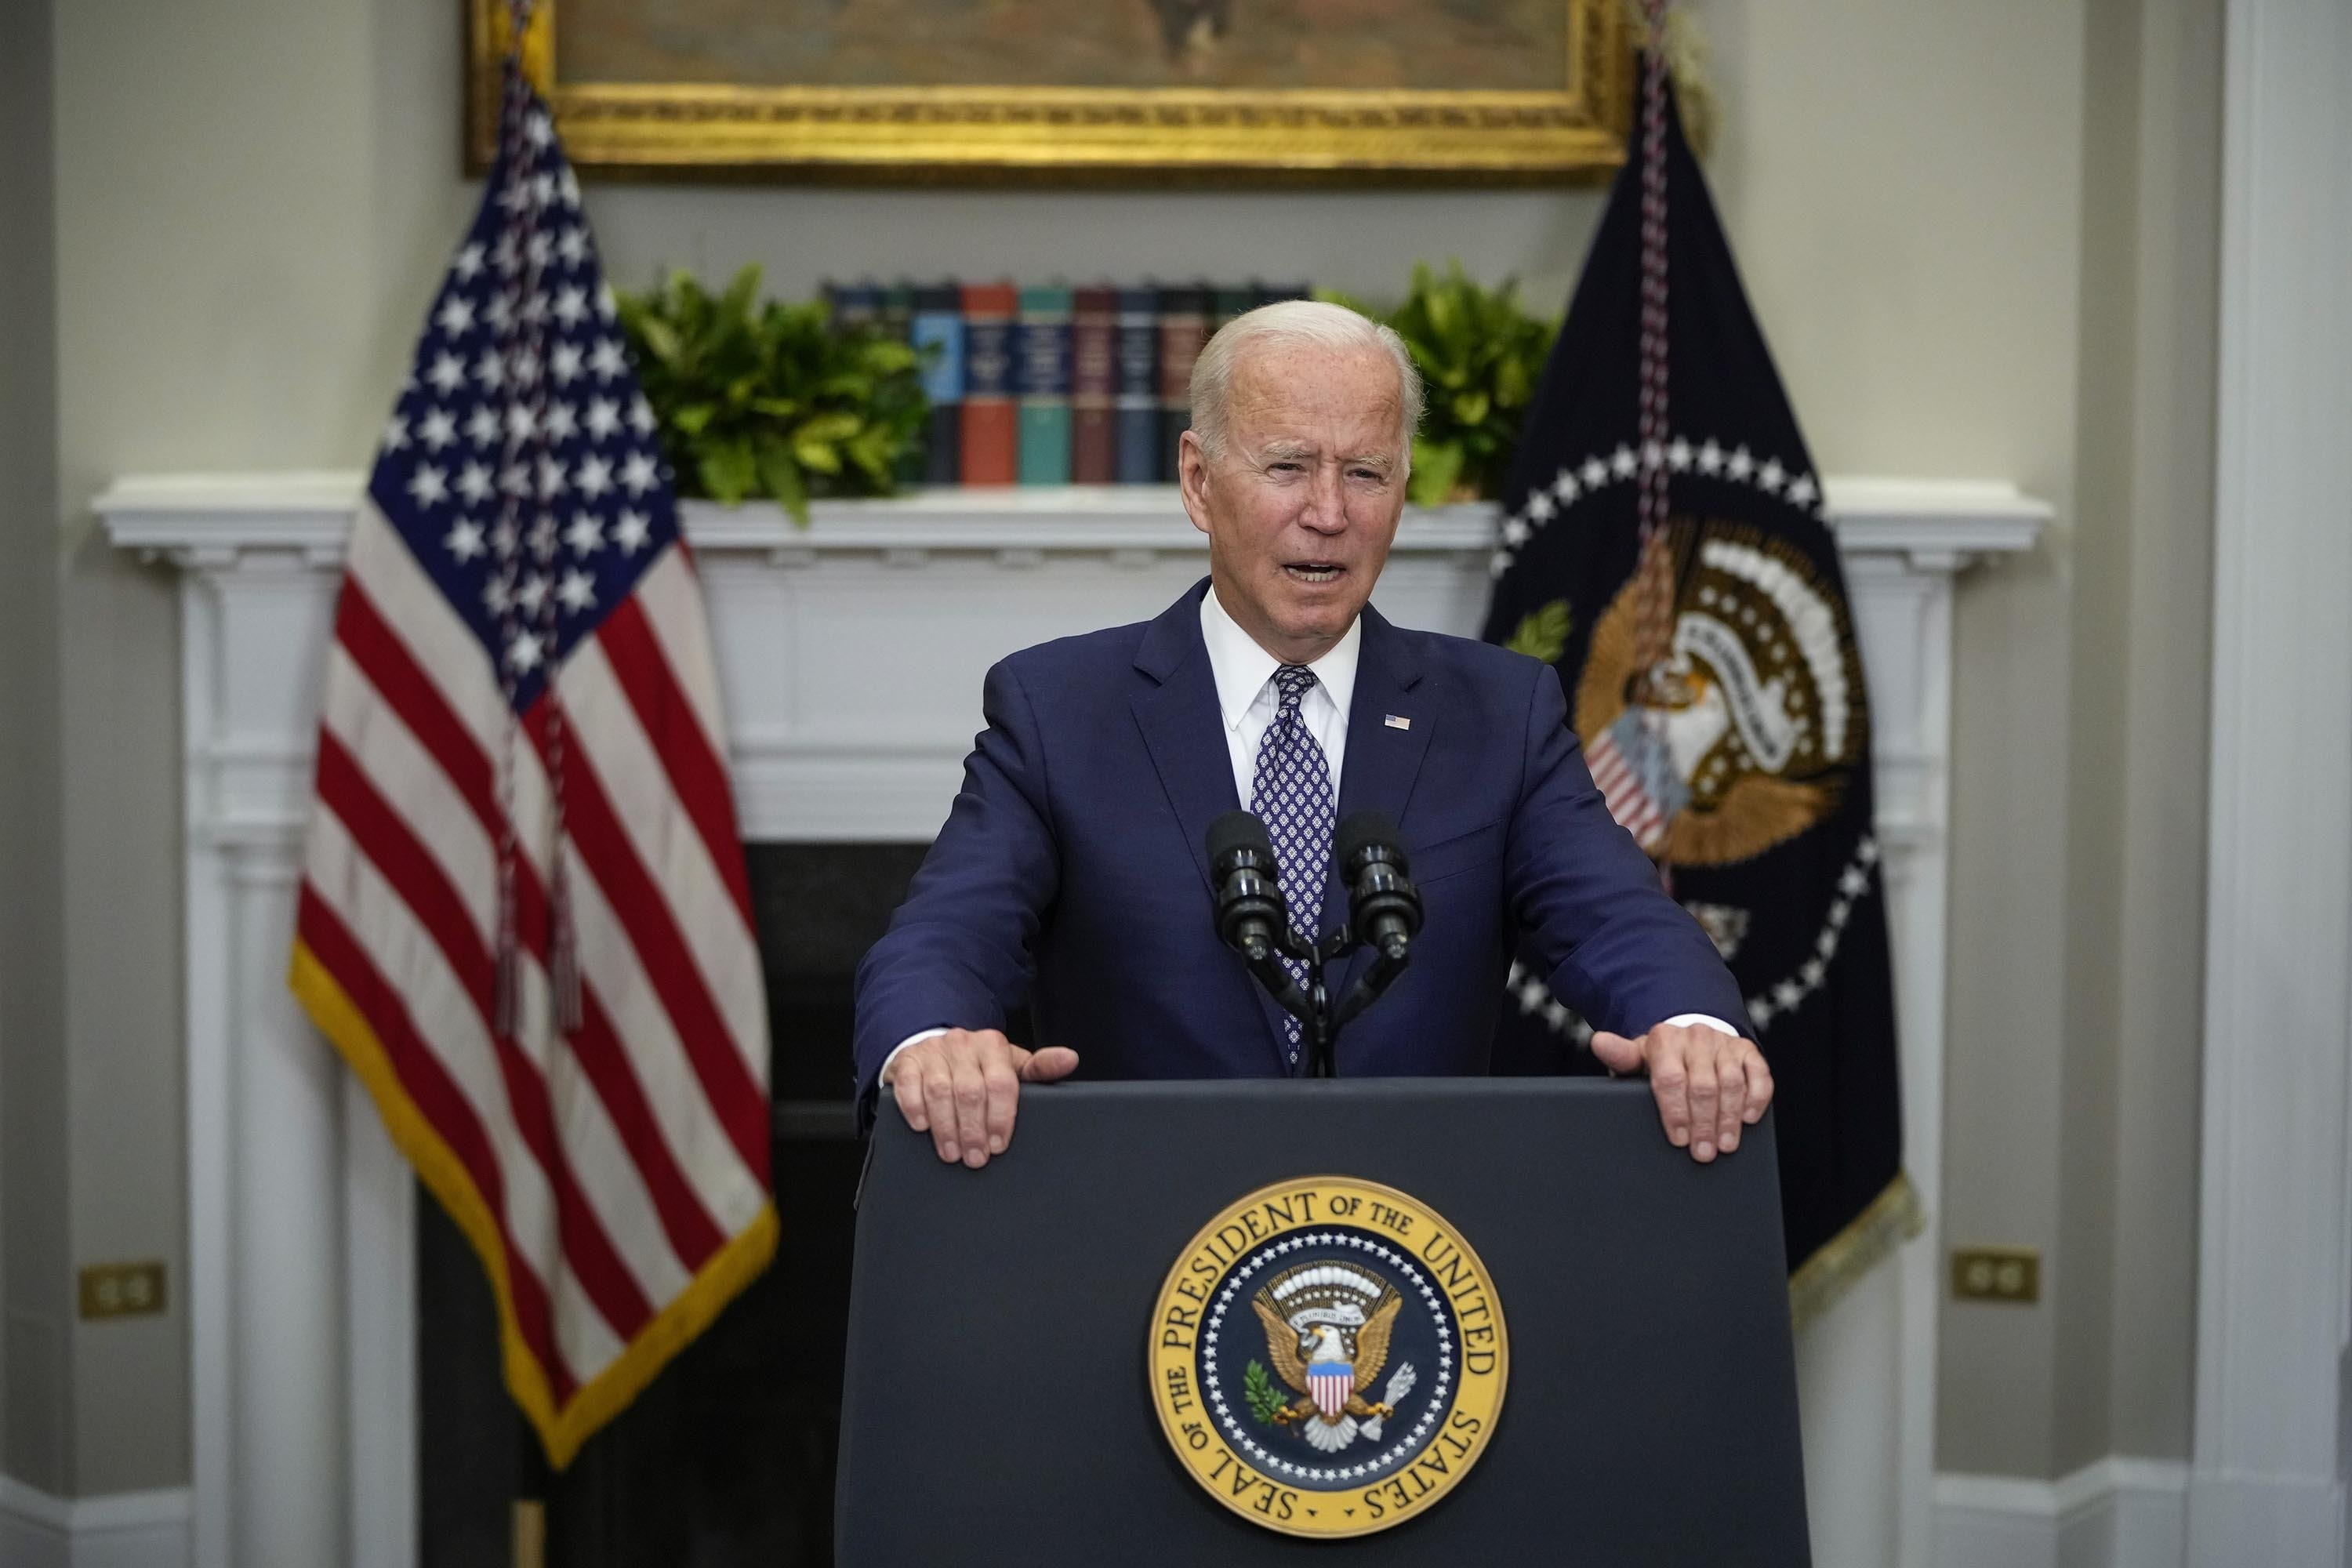 U.S. President Joe Biden speaks about the situation in Afghanistan in the Roosevelt Room of the White House in Washington, D.C., U.S., Aug. 24, 2021. (Getty Images Photo)